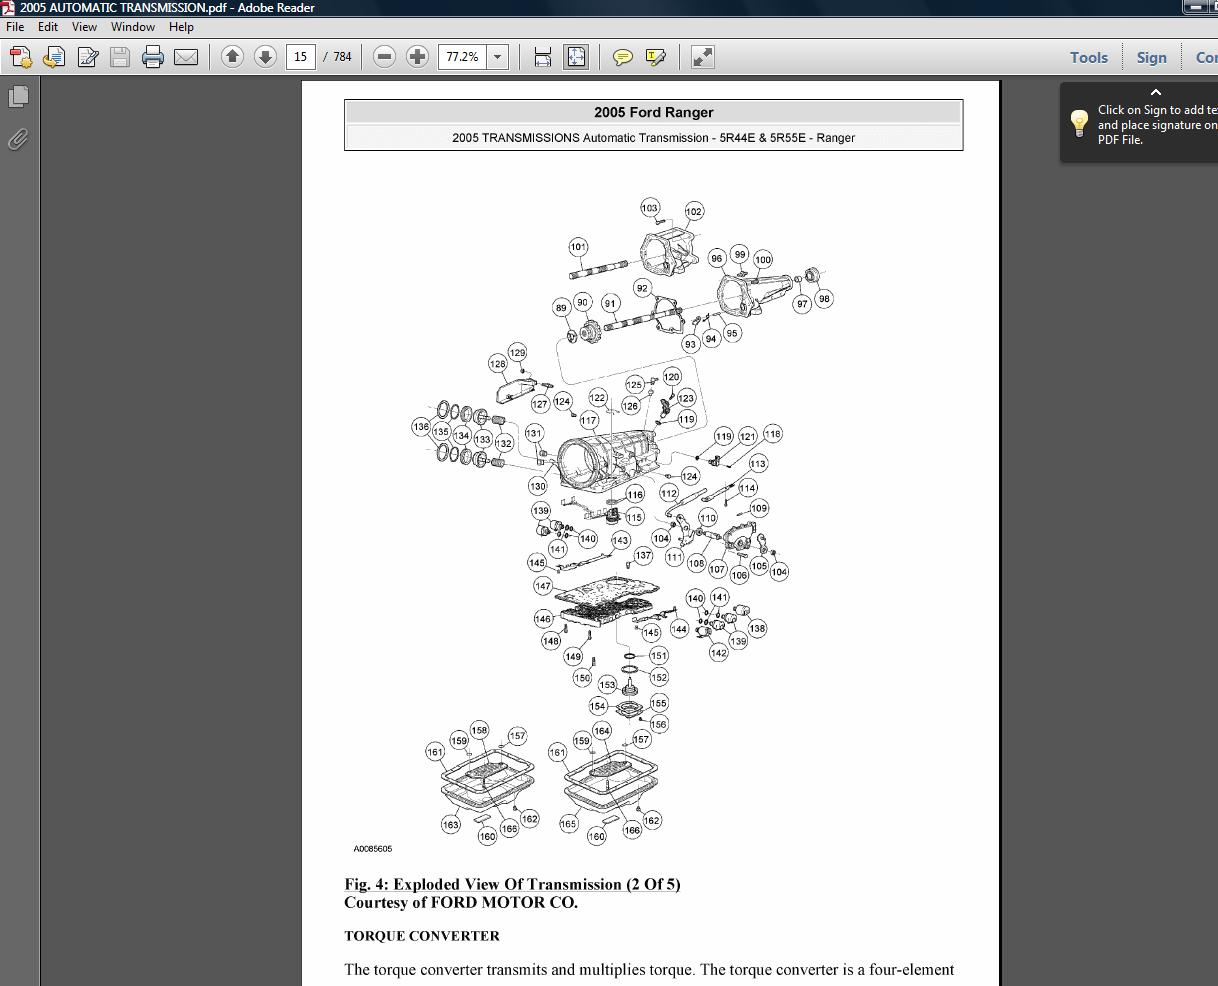 hight resolution of 2001 02 03 04 05 06 07 08 5r44e 5r55e ford ranger automatic transmission pdf manual download